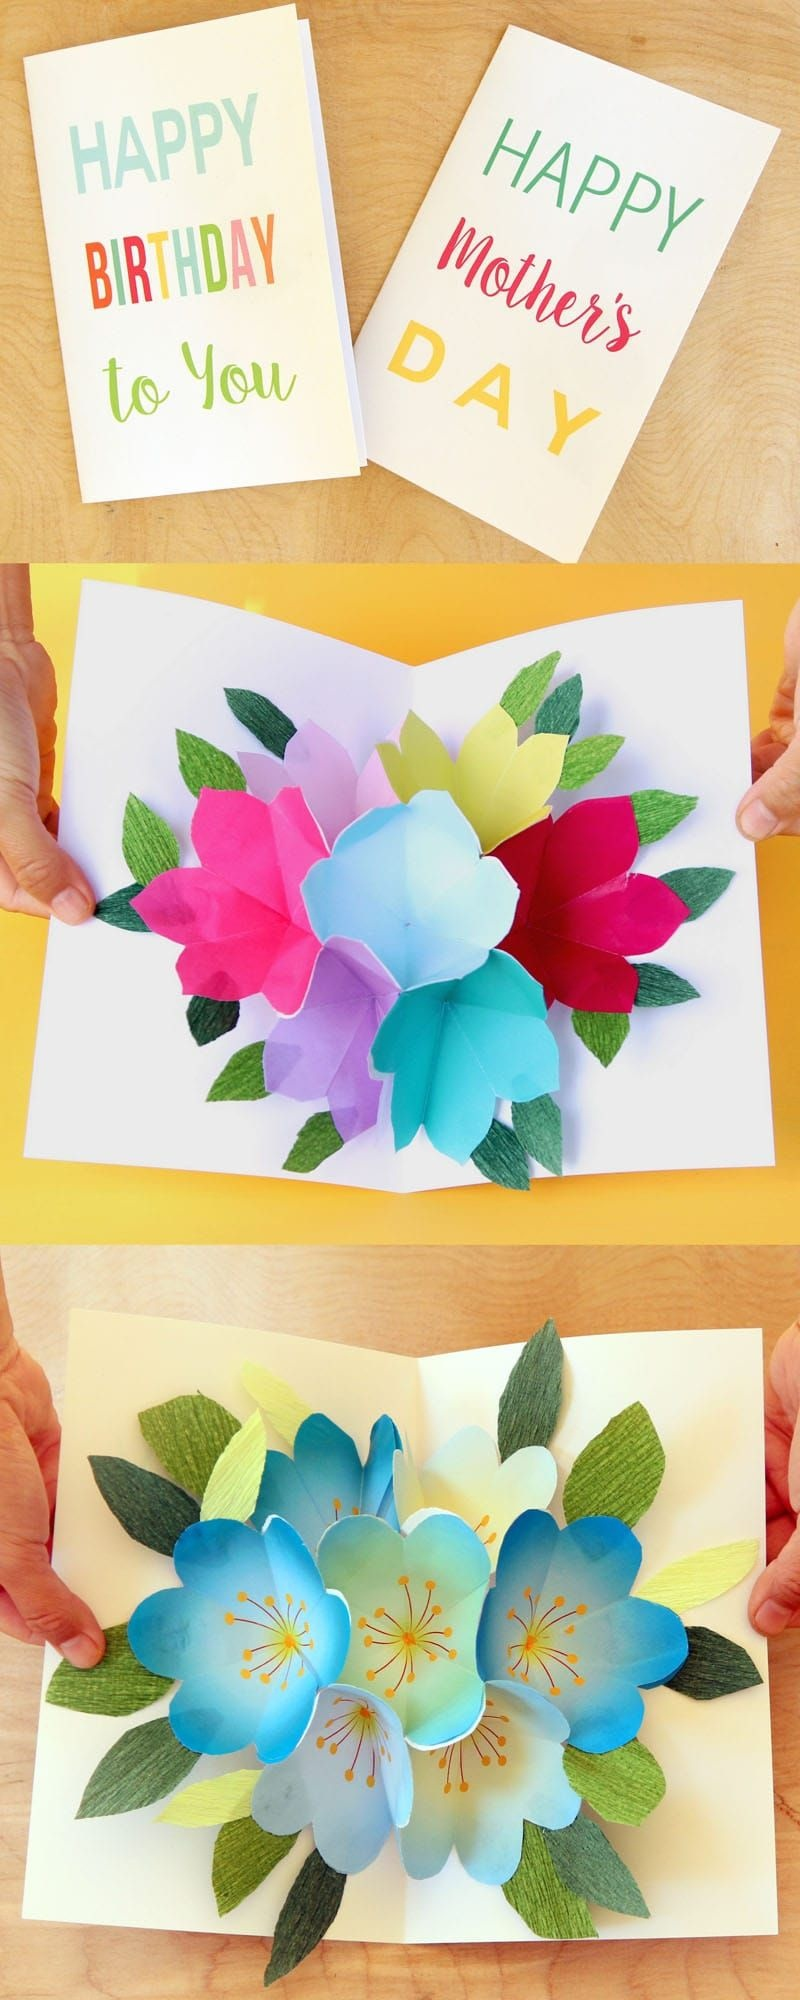 Free Printable Happy Birthday Card With Pop Up Bouquet | Printables - Free Printable Pop Up Card Templates